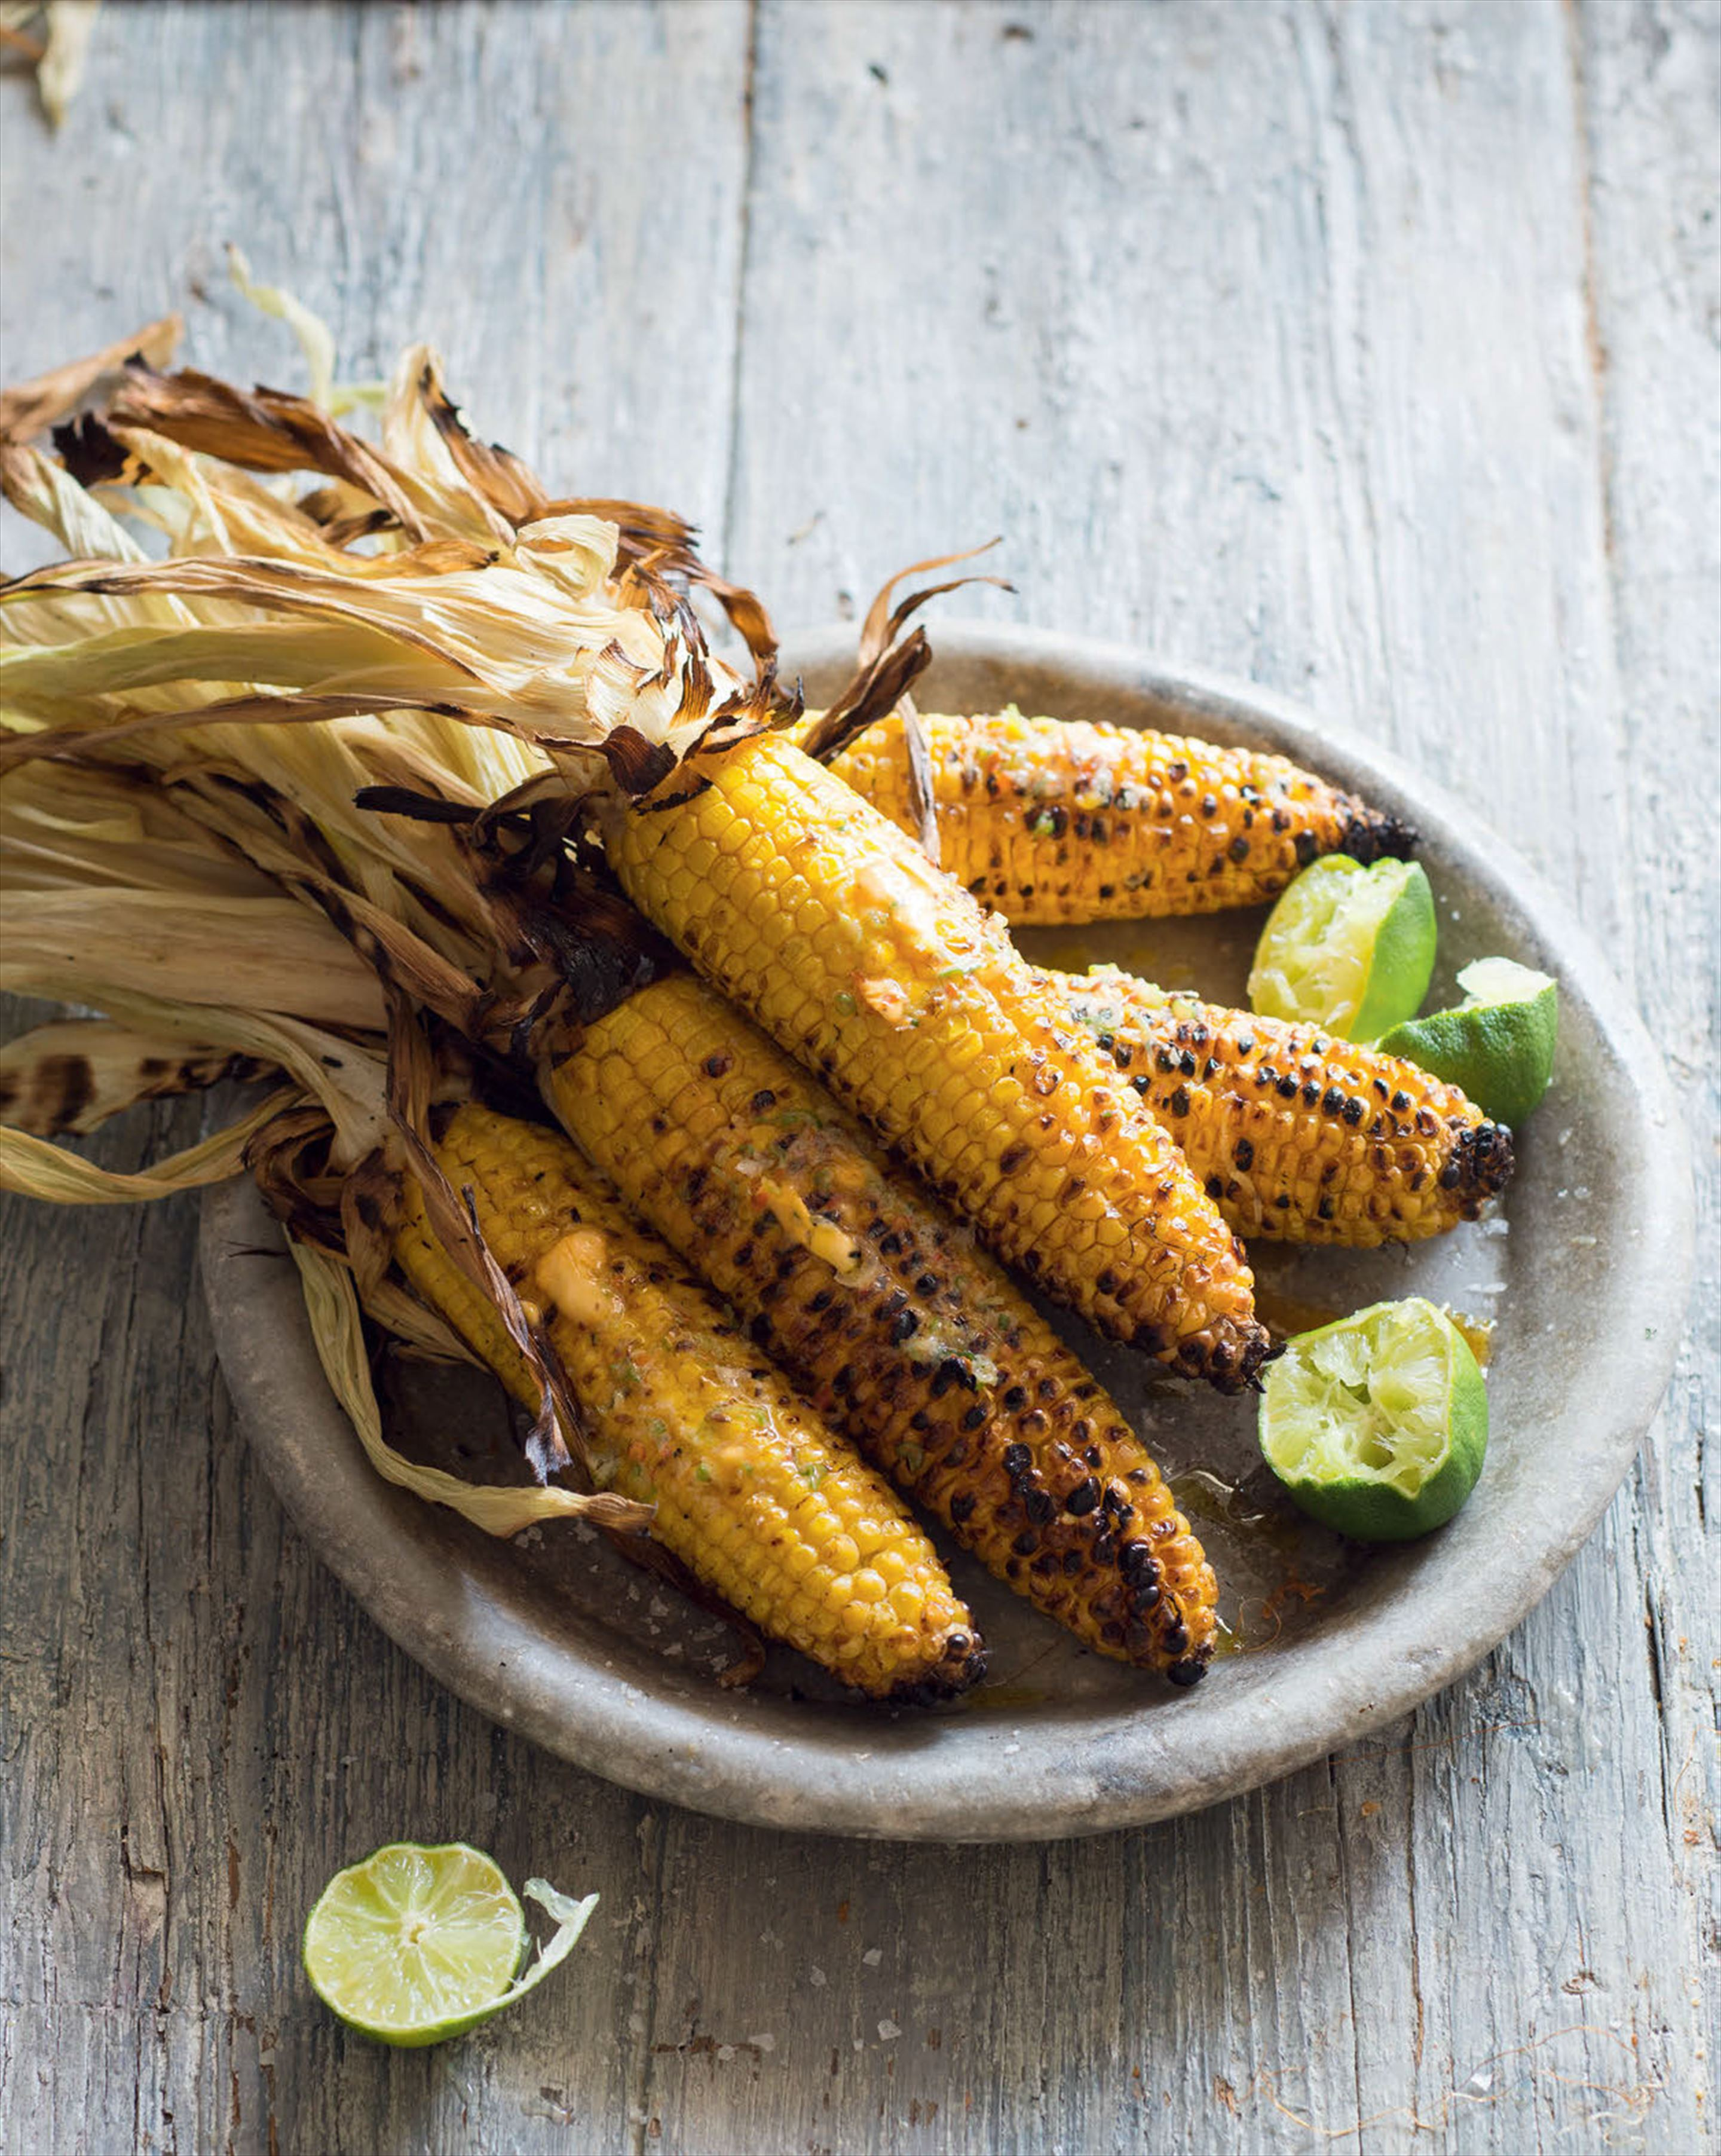 Charred corncobs with almond-saffron butter